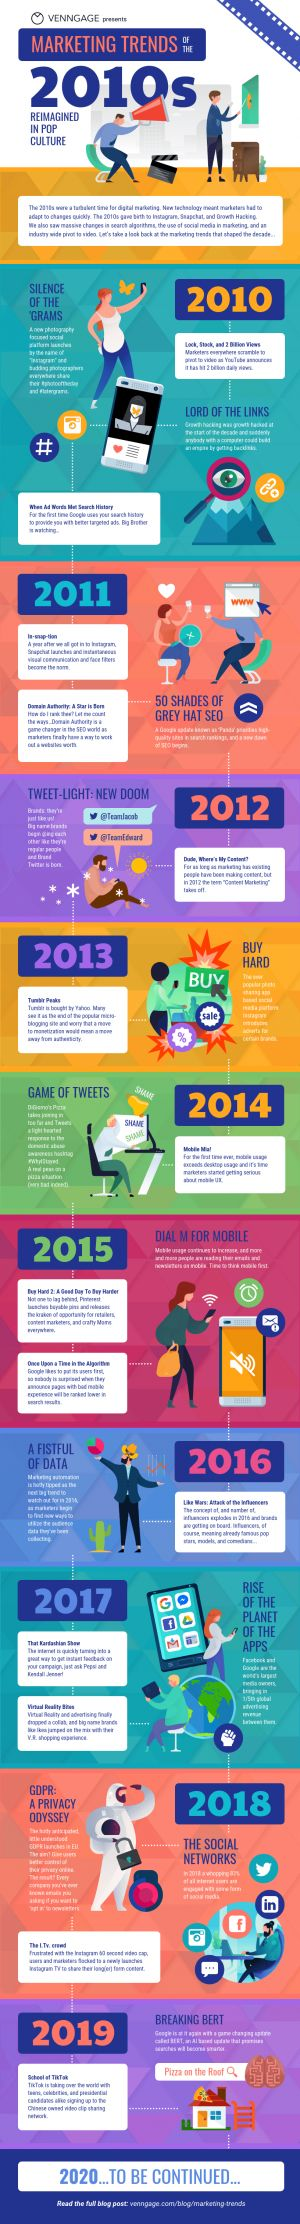 Marketing Trends of the 2010s